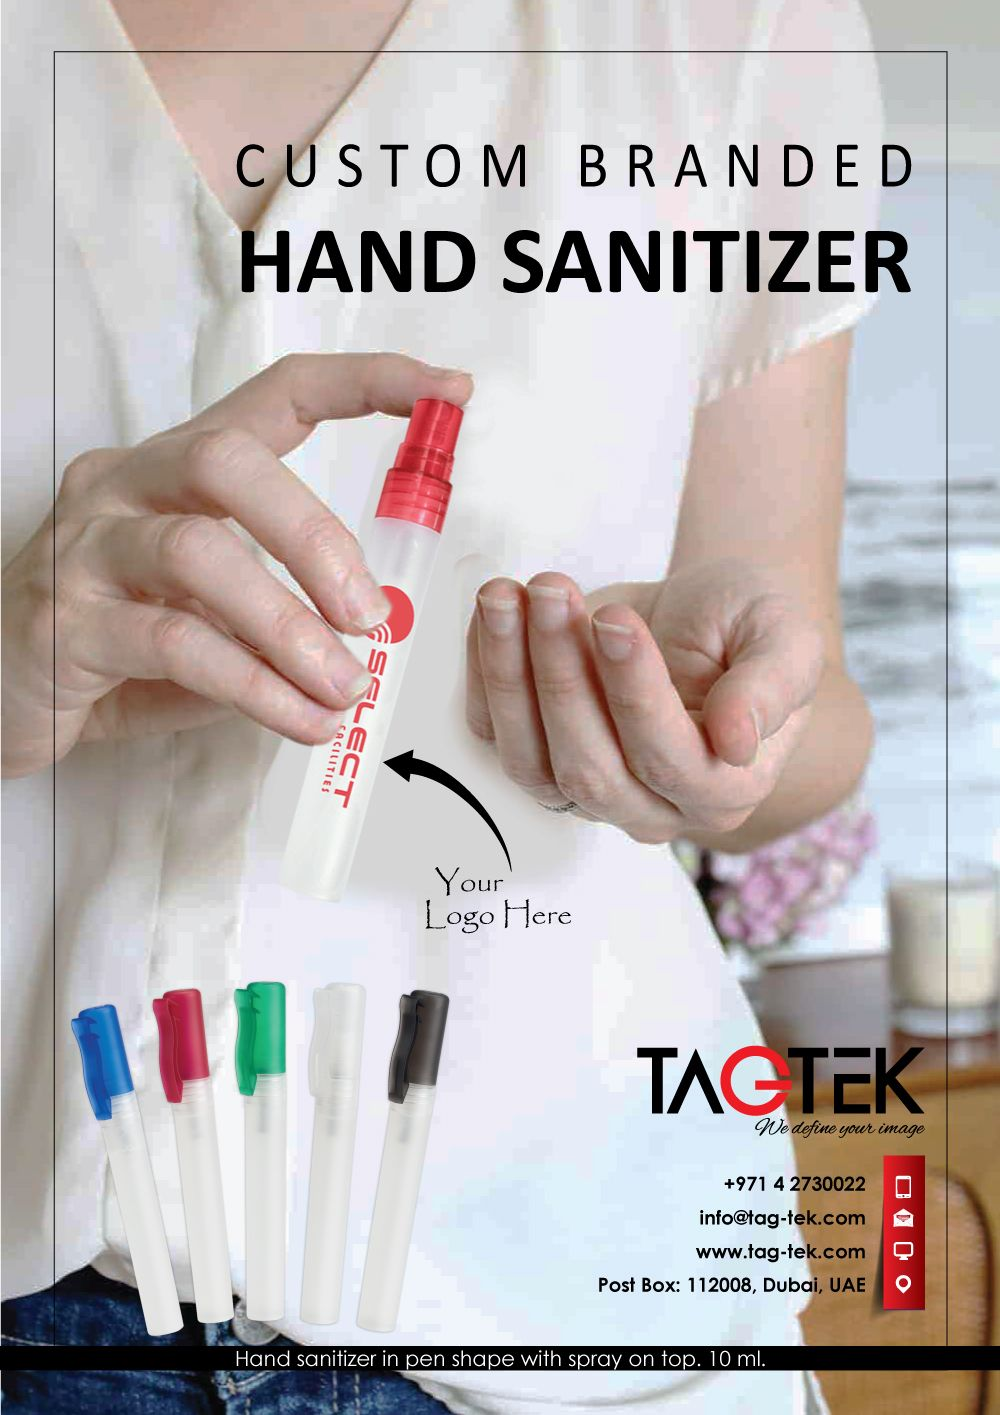 Custom Hand Sanitizer Is A Great Way To Protect The Health Of Your